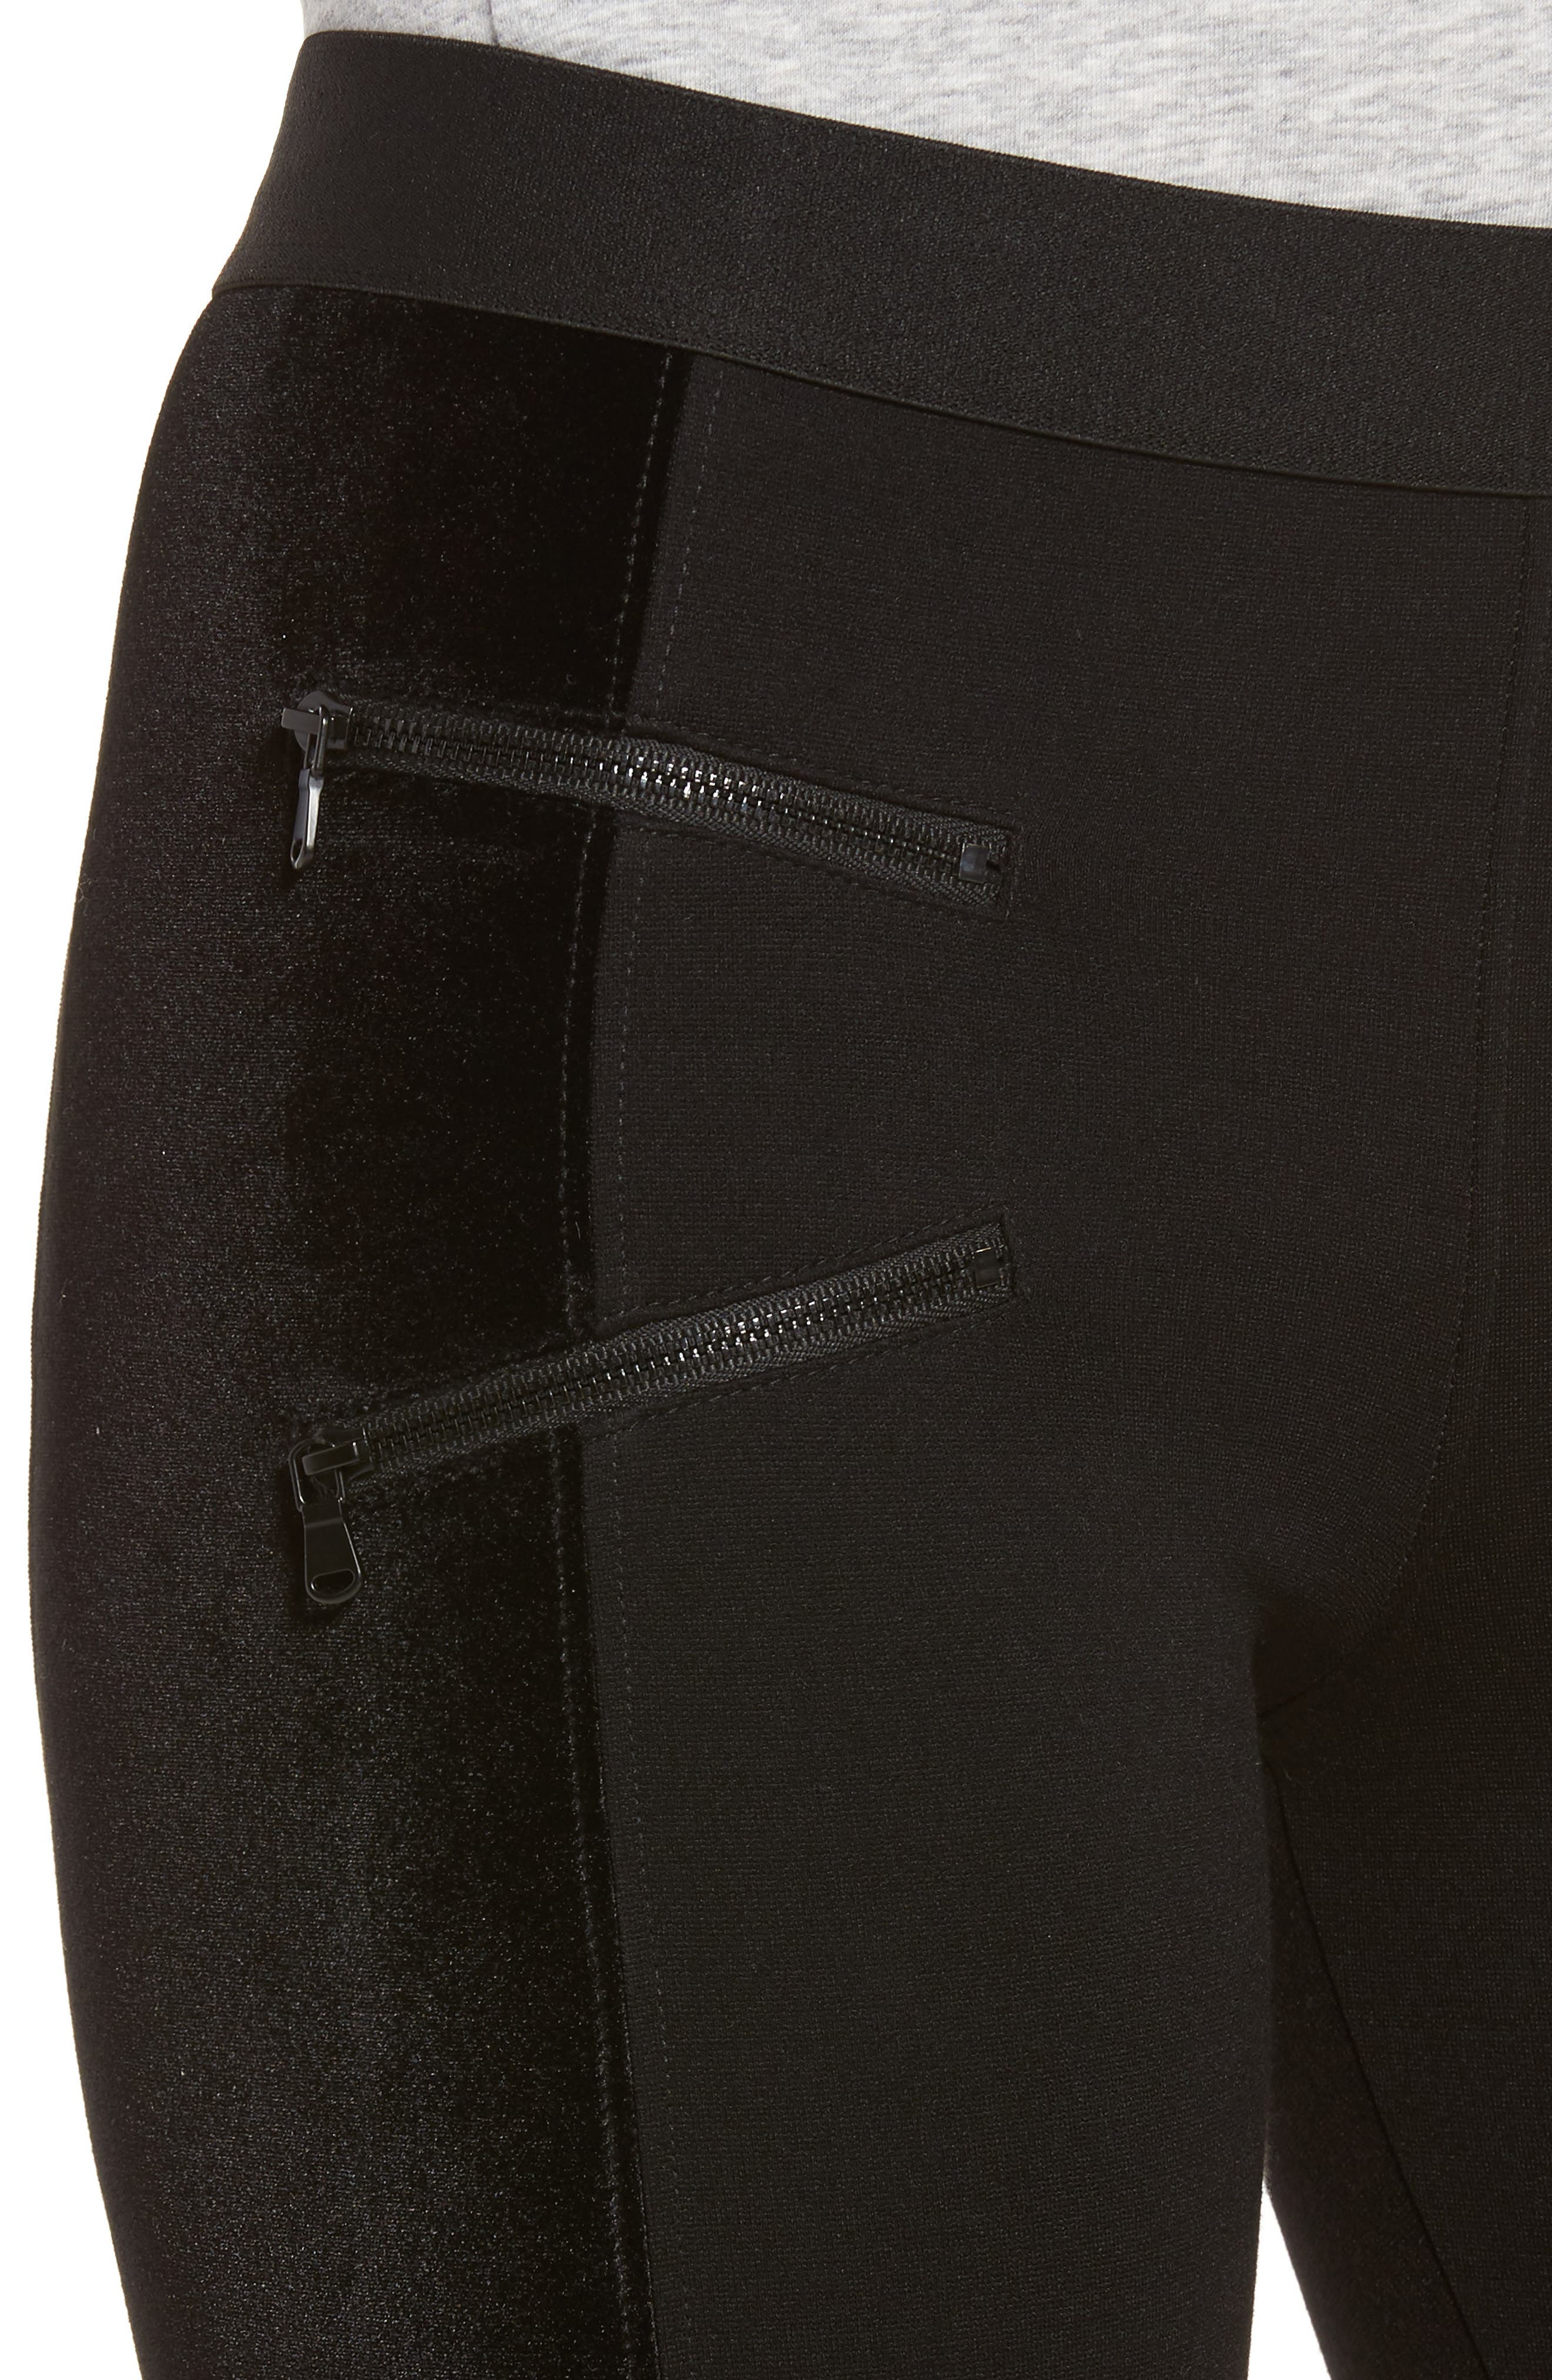 Starburst Zip Combo Leggings,                             Alternate thumbnail 5, color,                             Black